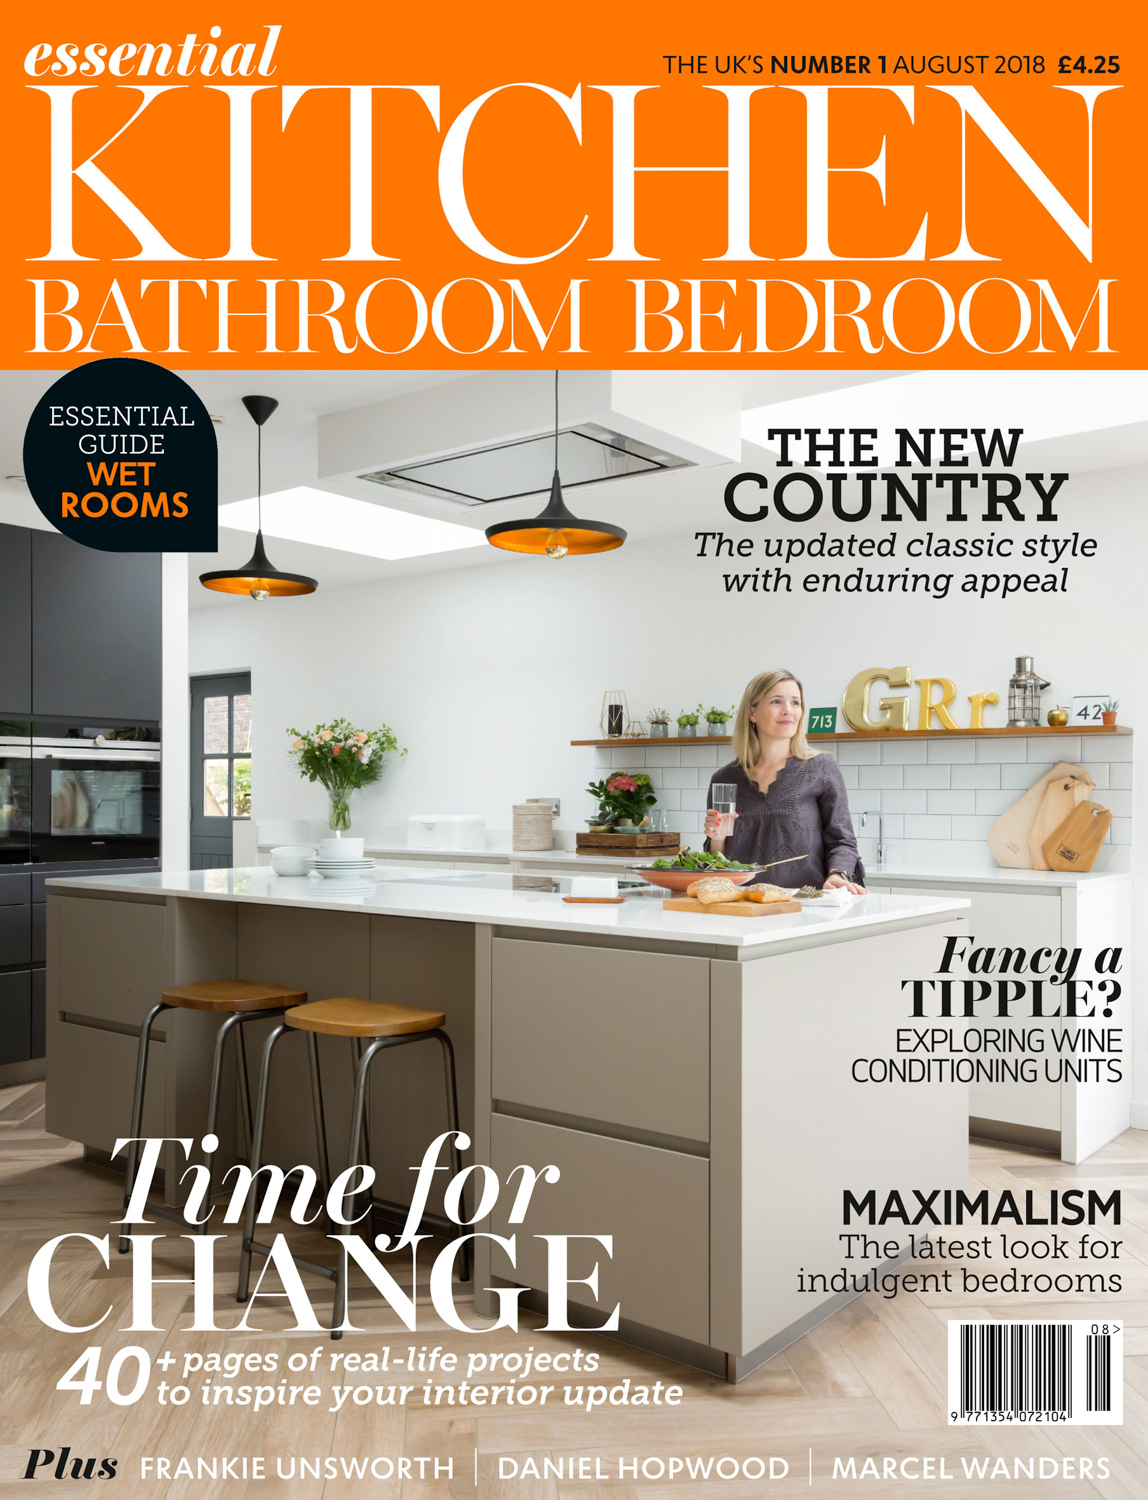 Essential Kitchen Bathroom Bedroom Magazine Cover August 2018 | Paul Craig Interior Photographer